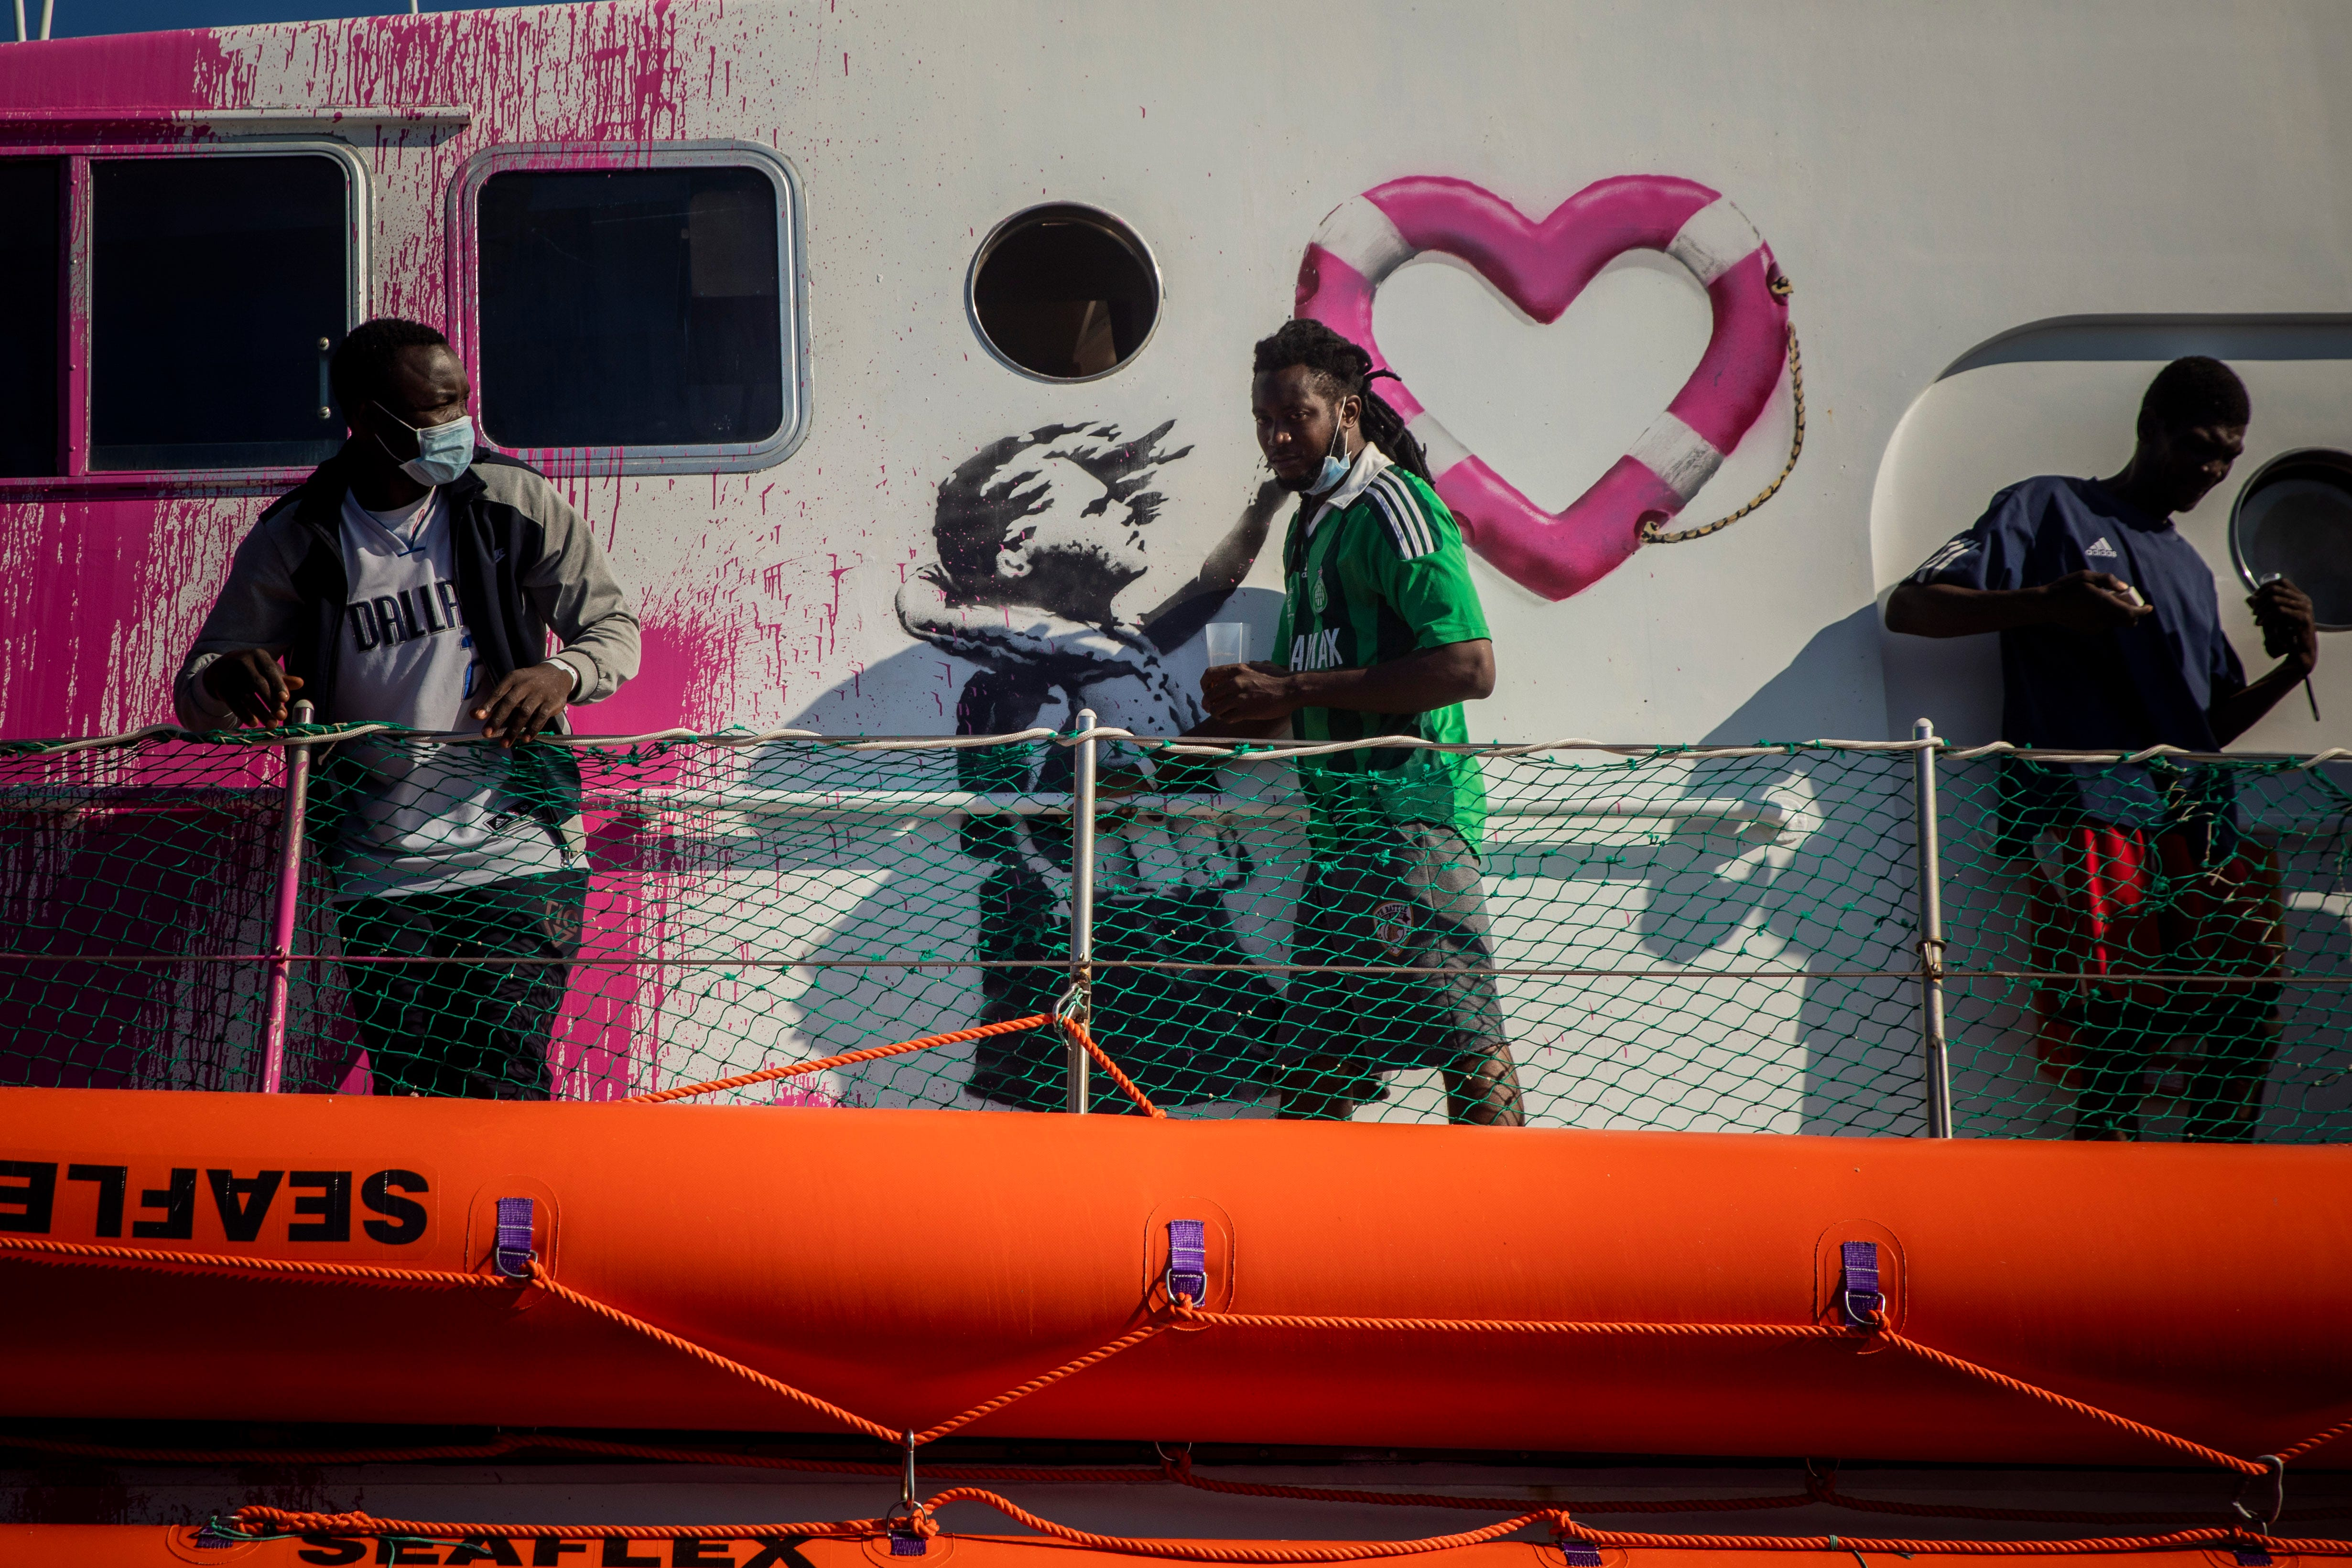 Banksy buys lifeboat to help migrants crossing the Mediterranean Sea:  All Black Lives Matter